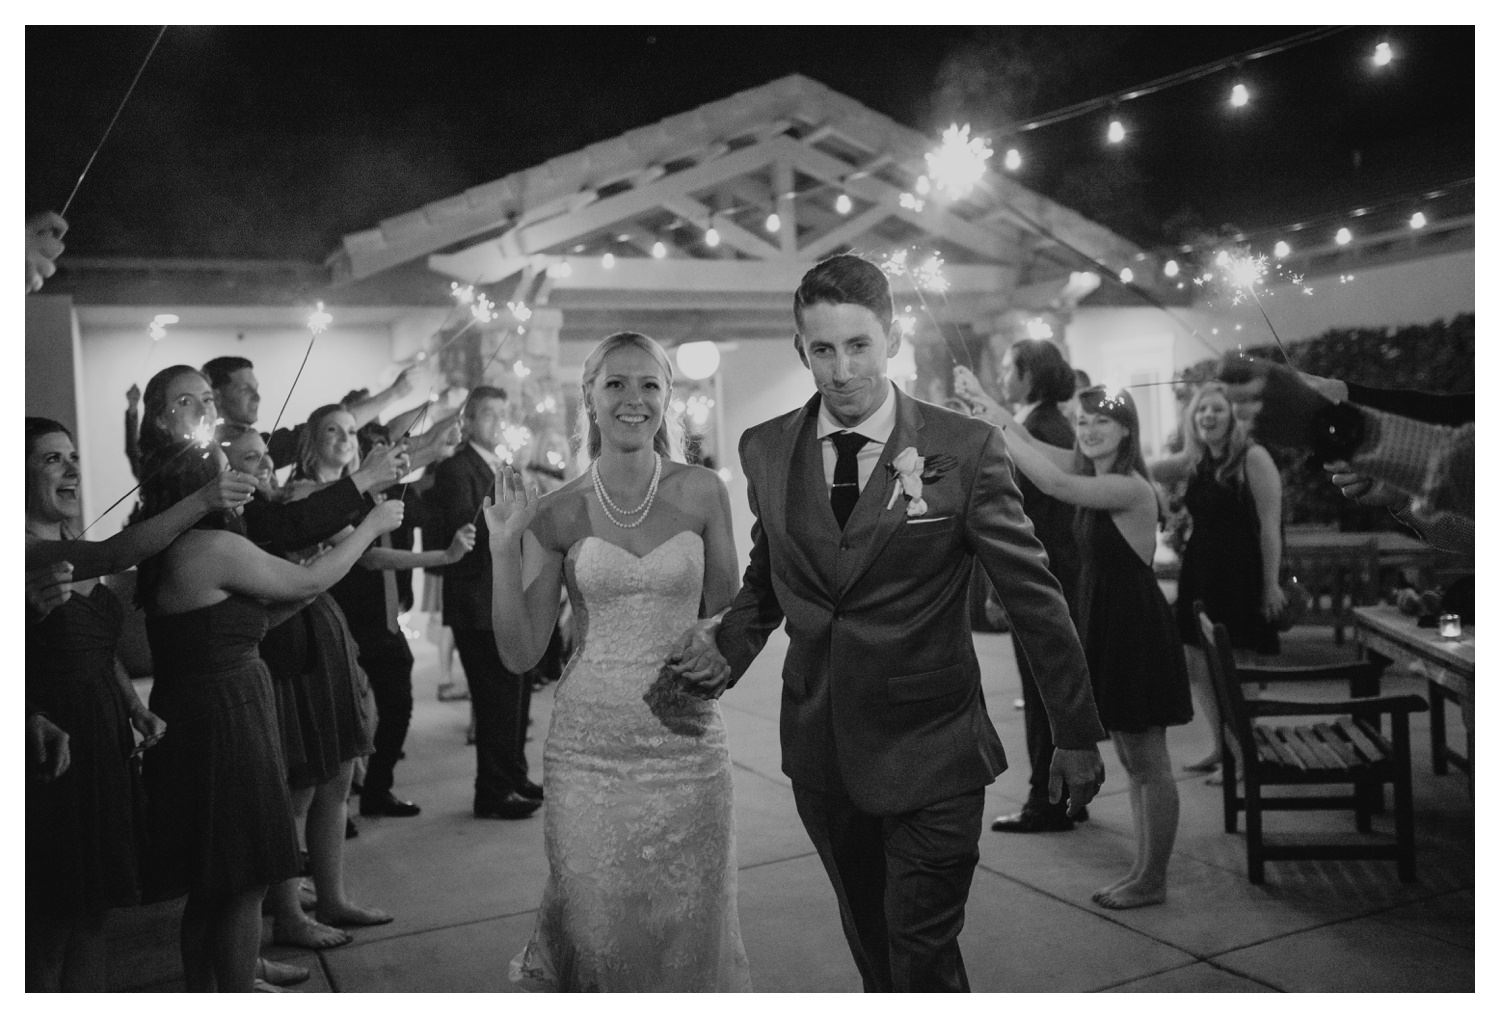 A bride and groom make their grand exit  under the fire light of sparklers.